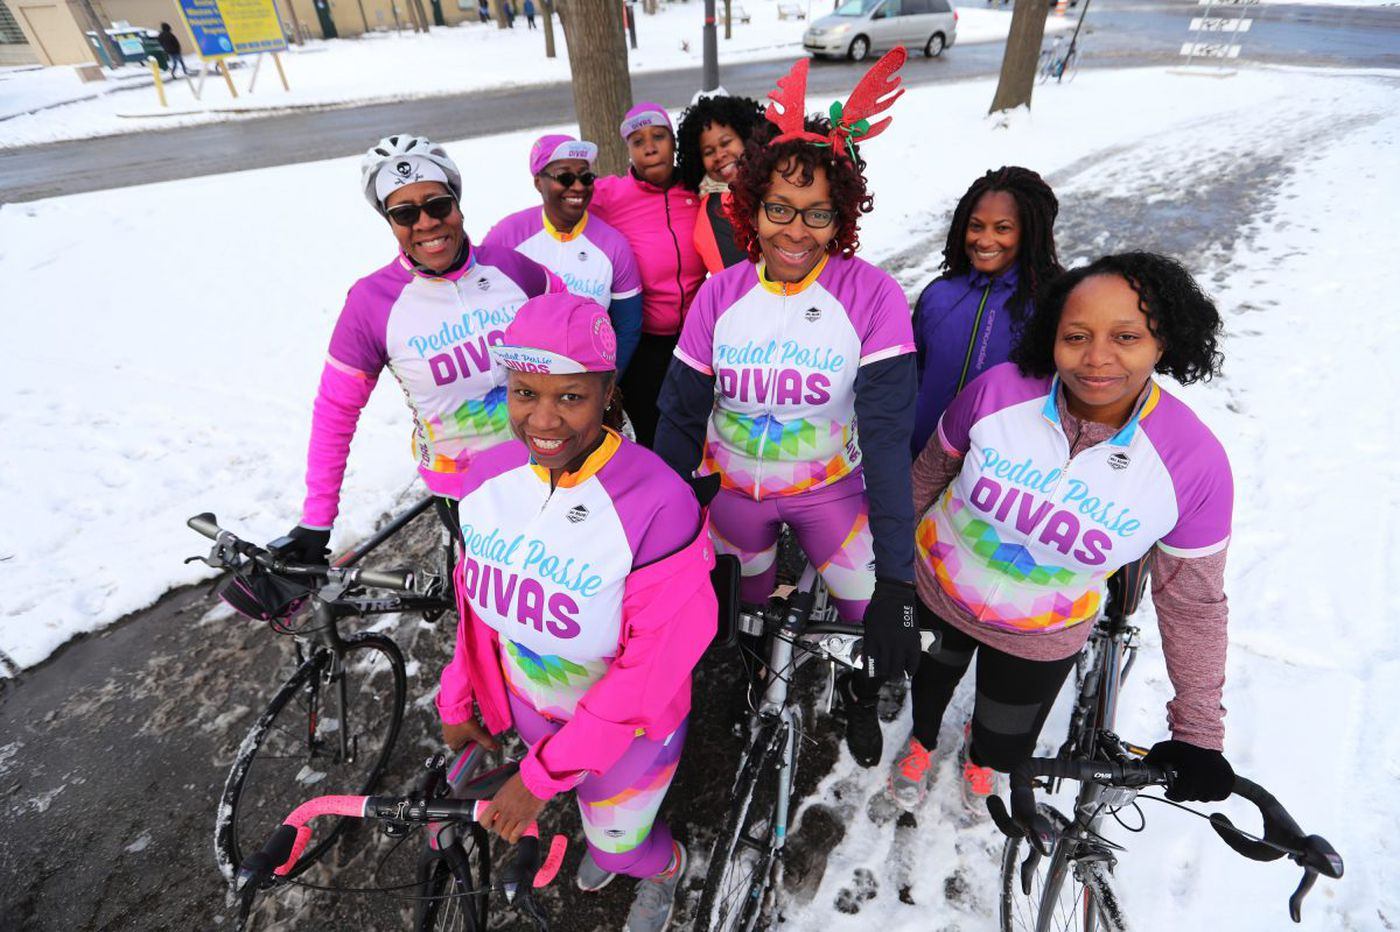 Meet the Pedal Posse Divas - black women biking on Philly streets